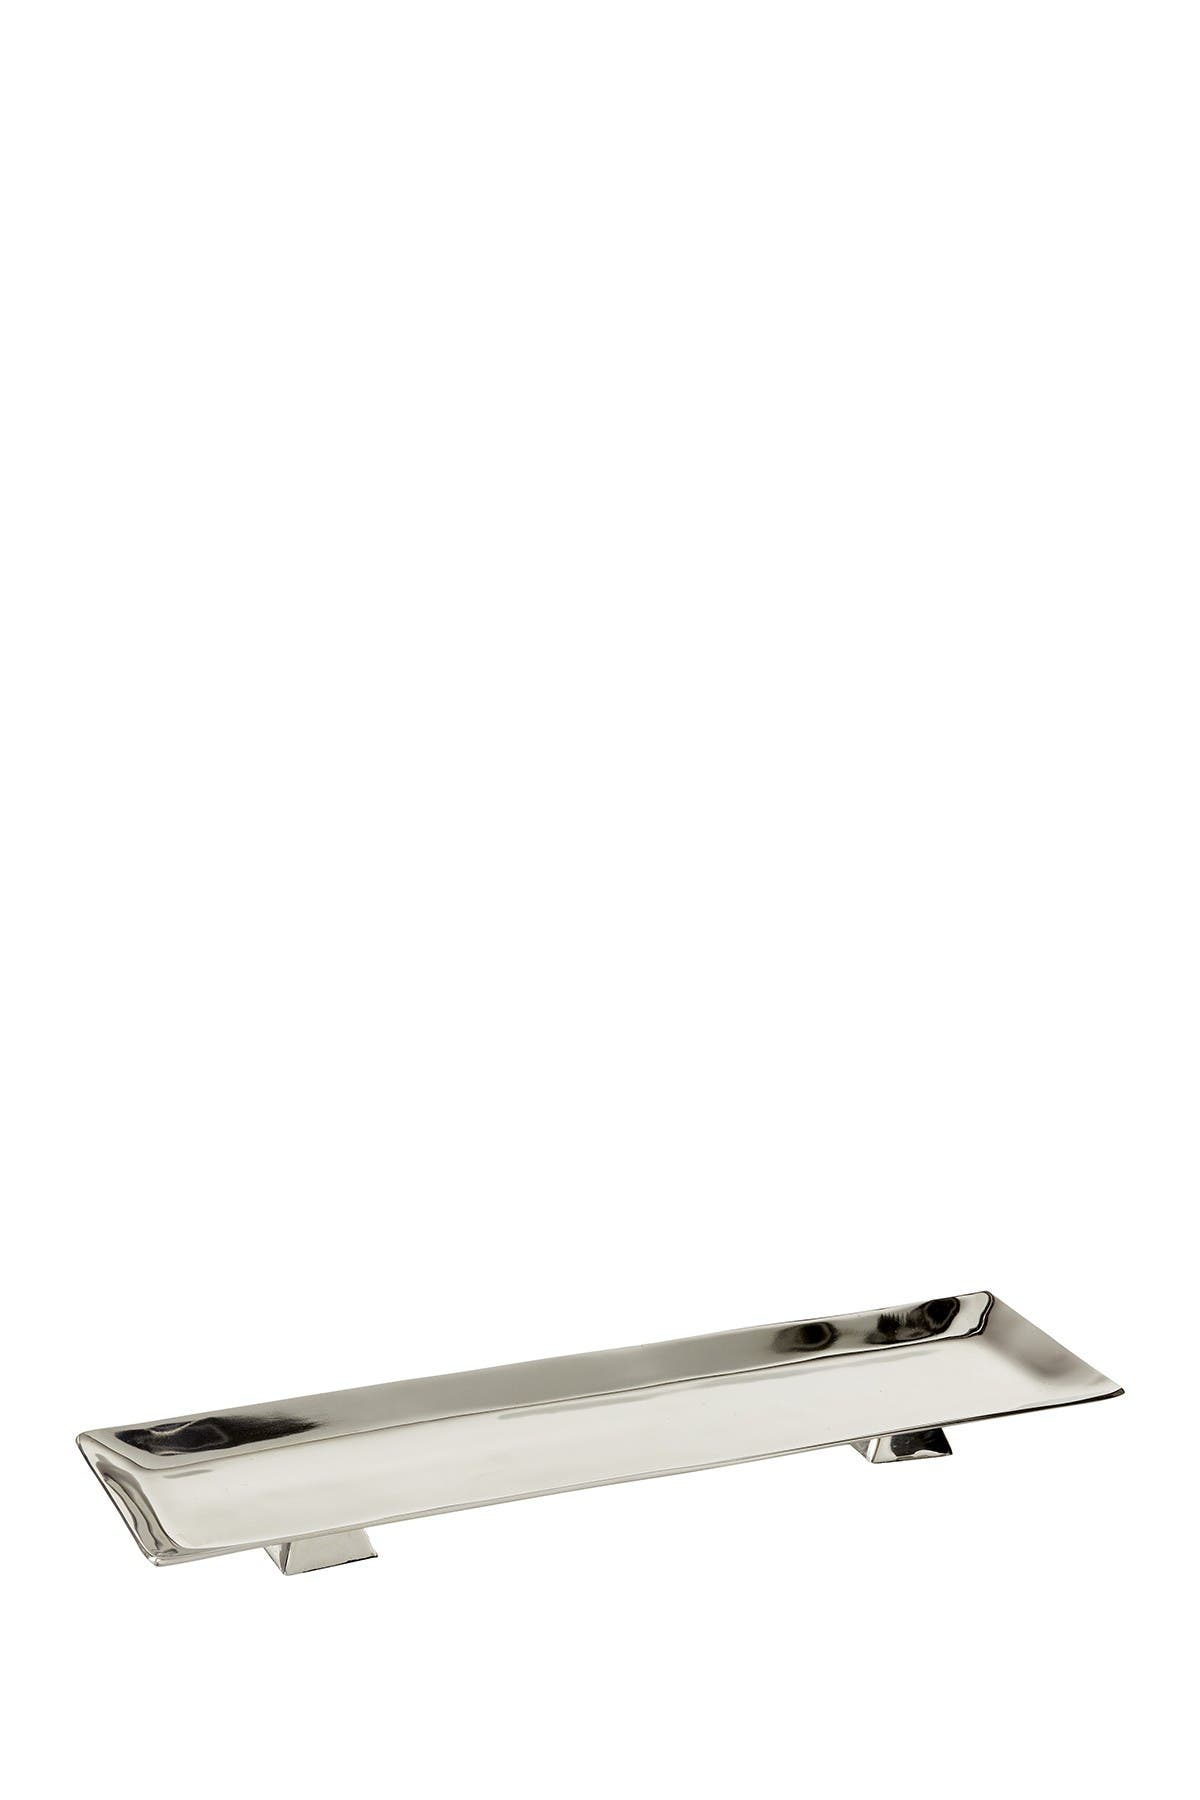 Image of Willow Row Contemporary Silver Aluminum Rectangular Tray